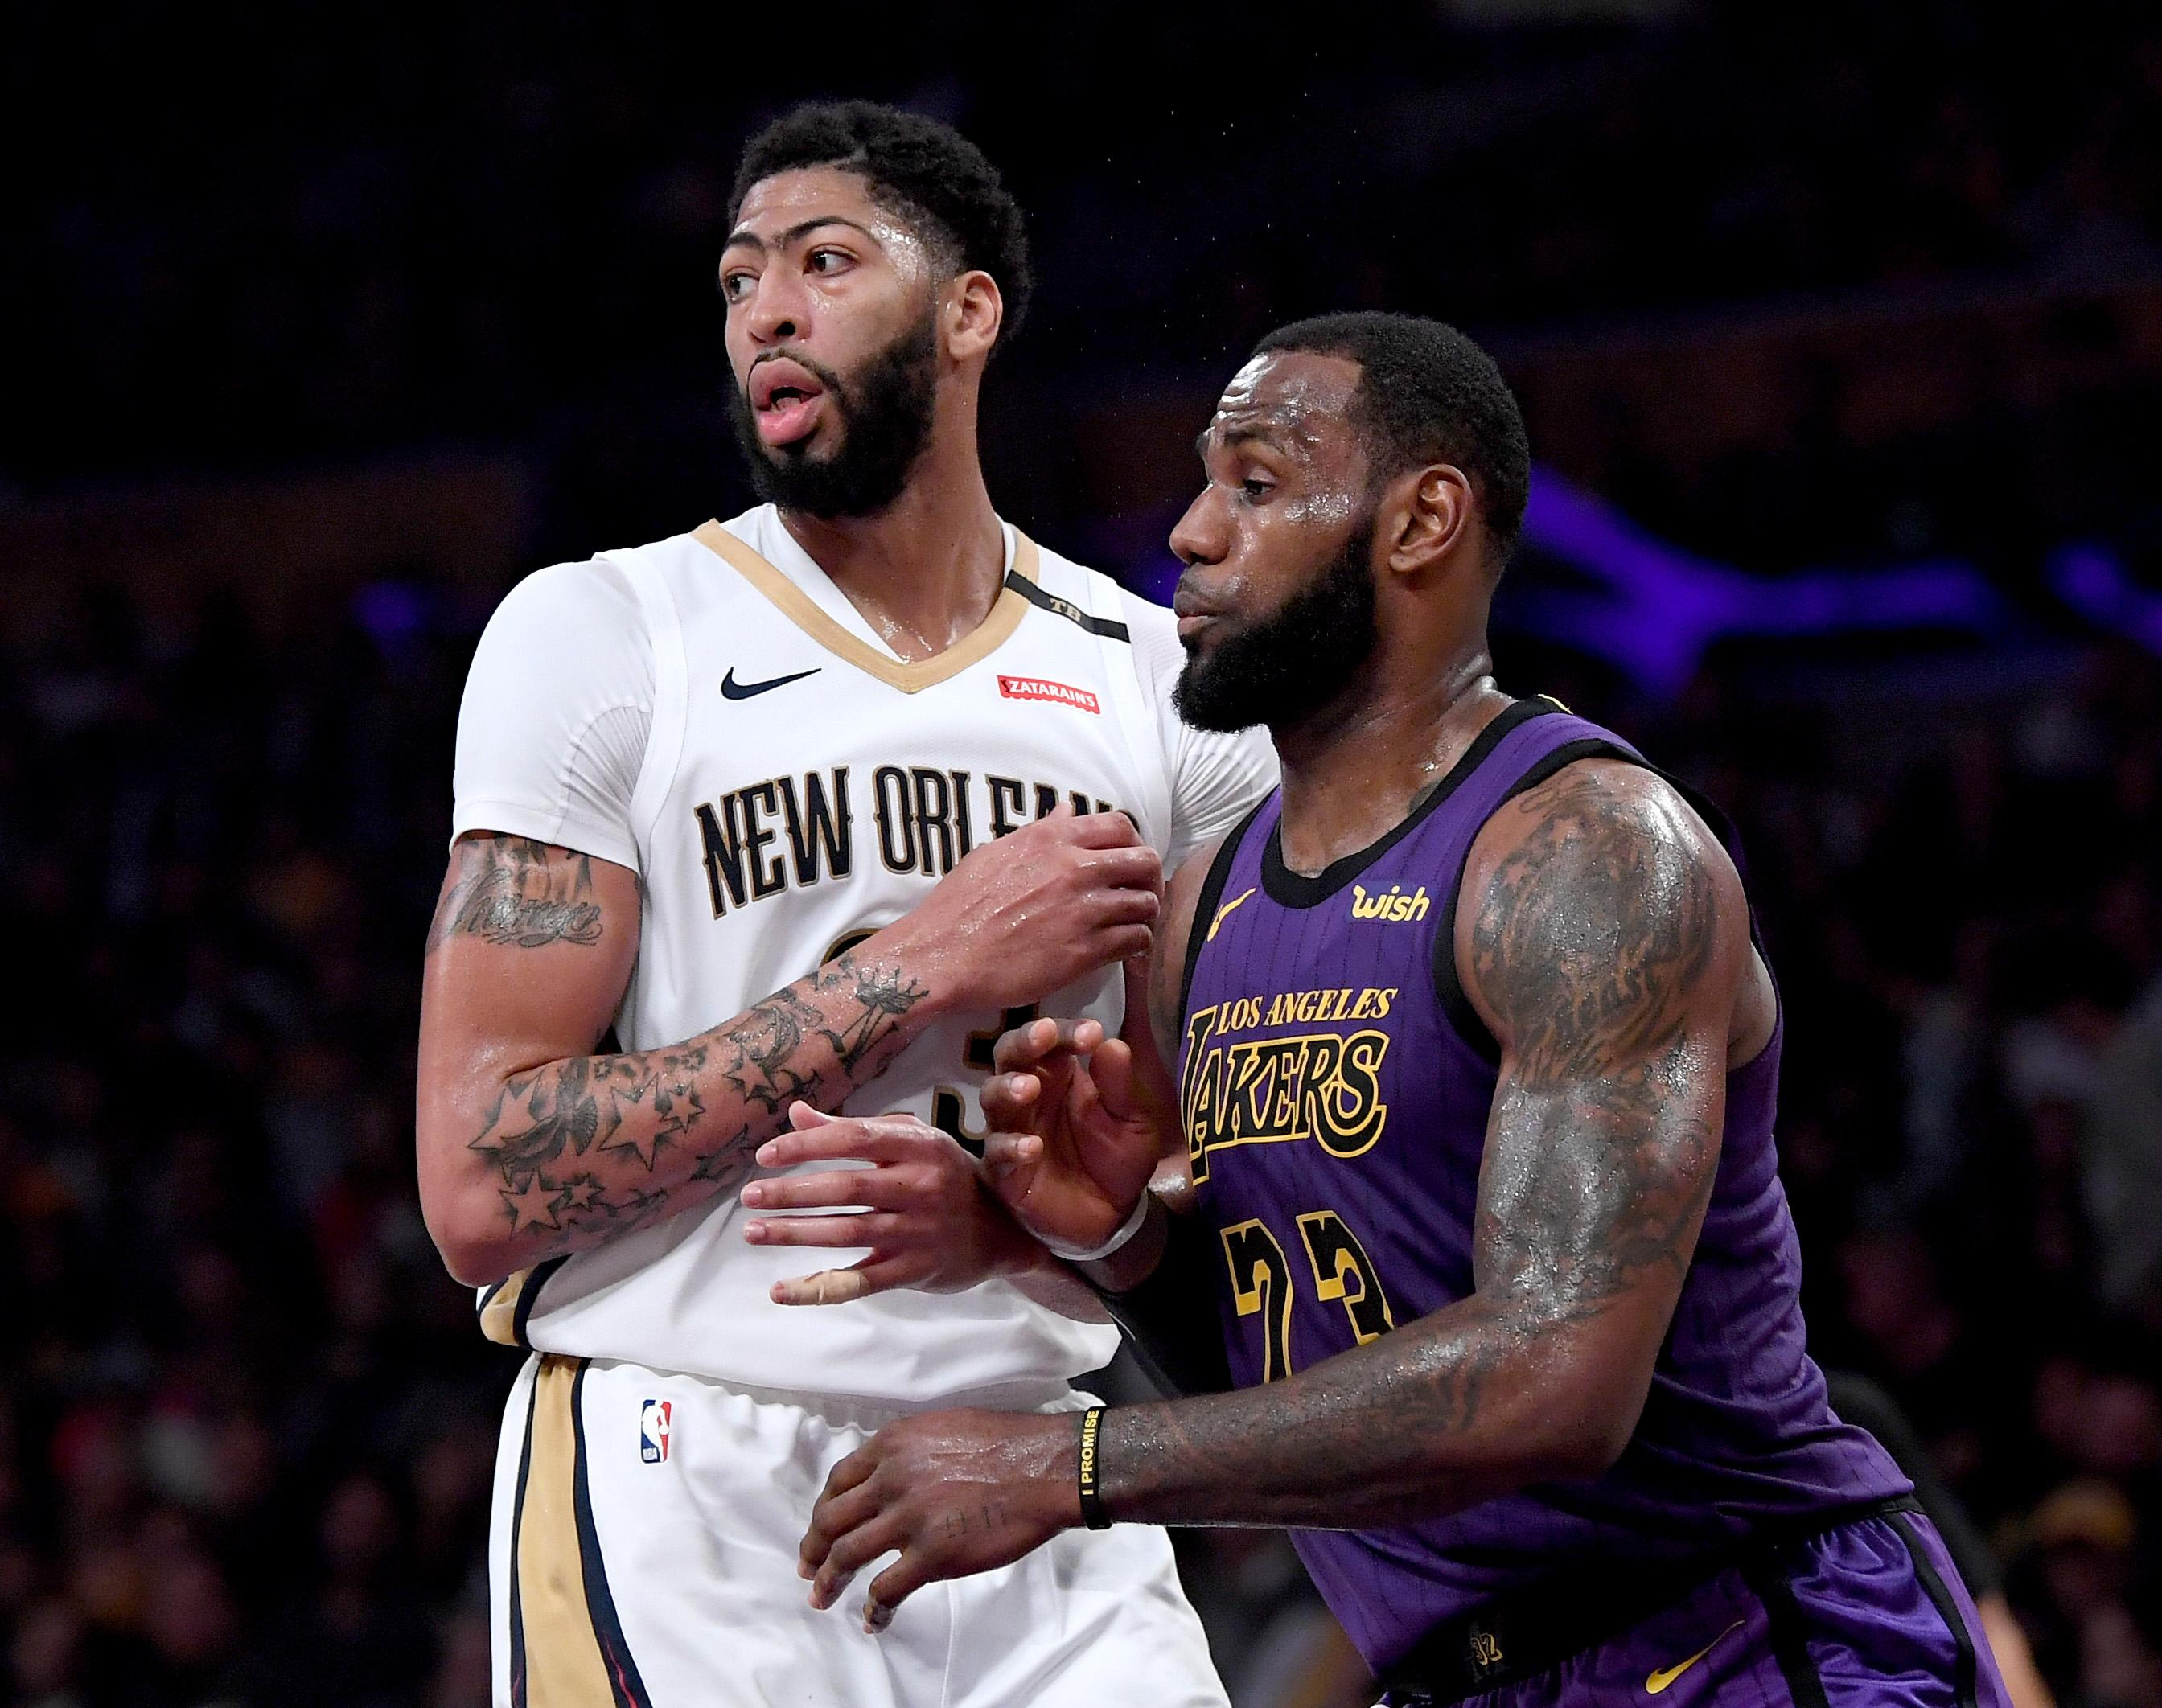 f58fb58b8a8 Lakers Rumors: Anthony Davis Trade Might Only Be Matter Of Time, Knicks  Can't Match Pelicans' Price